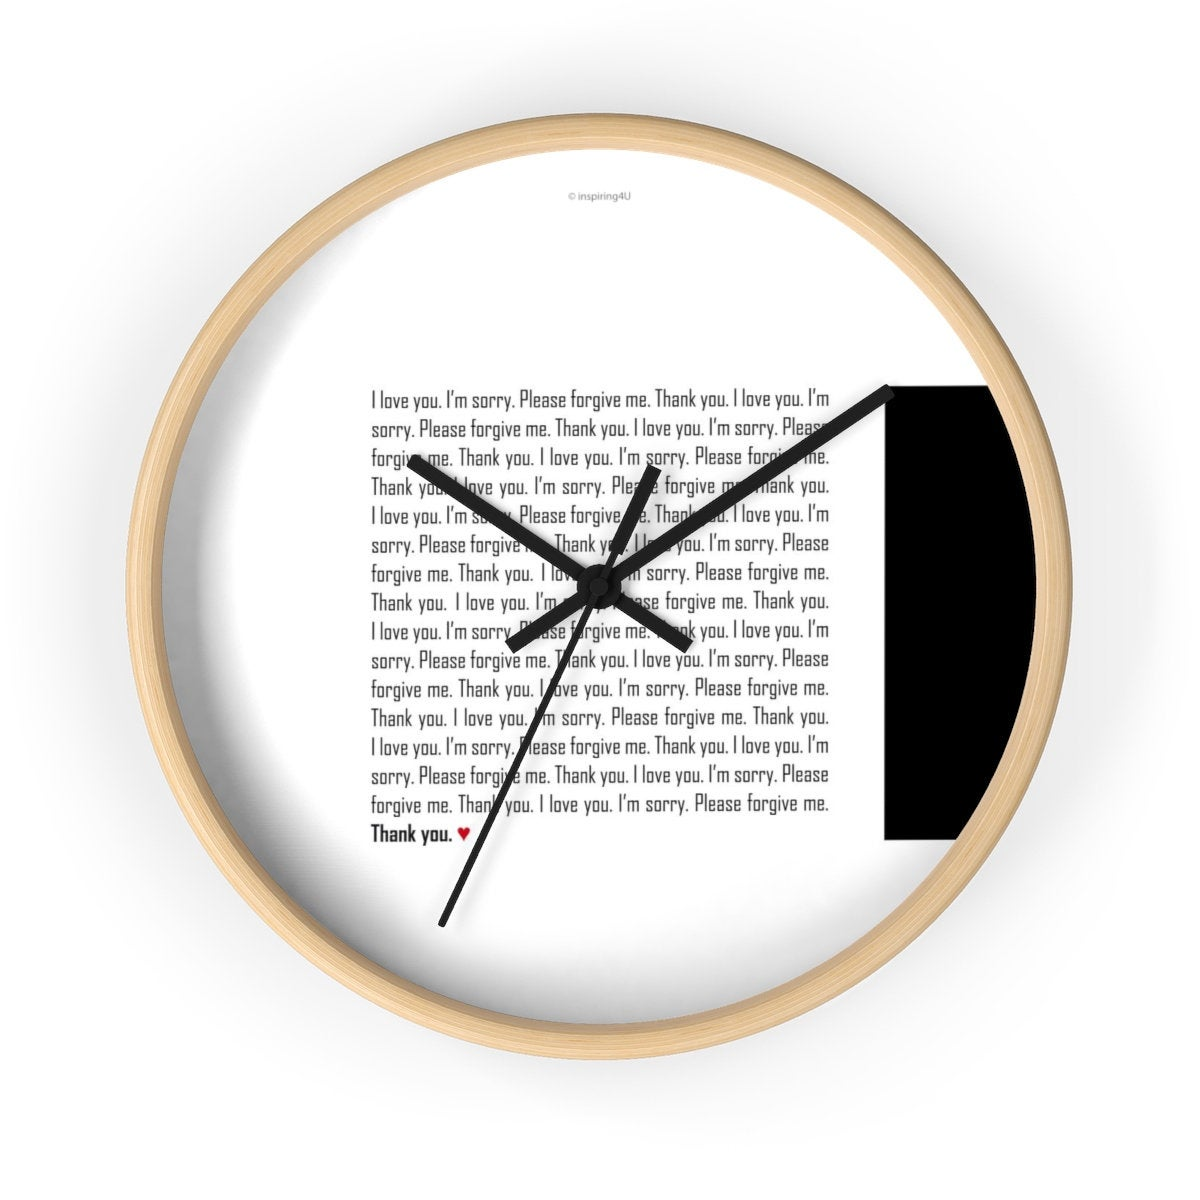 Ho'oponopono home and office wall décor, Healing sentences, Mantra quotes, Black & White clock, Hawaiian practice Hooponopono typography.